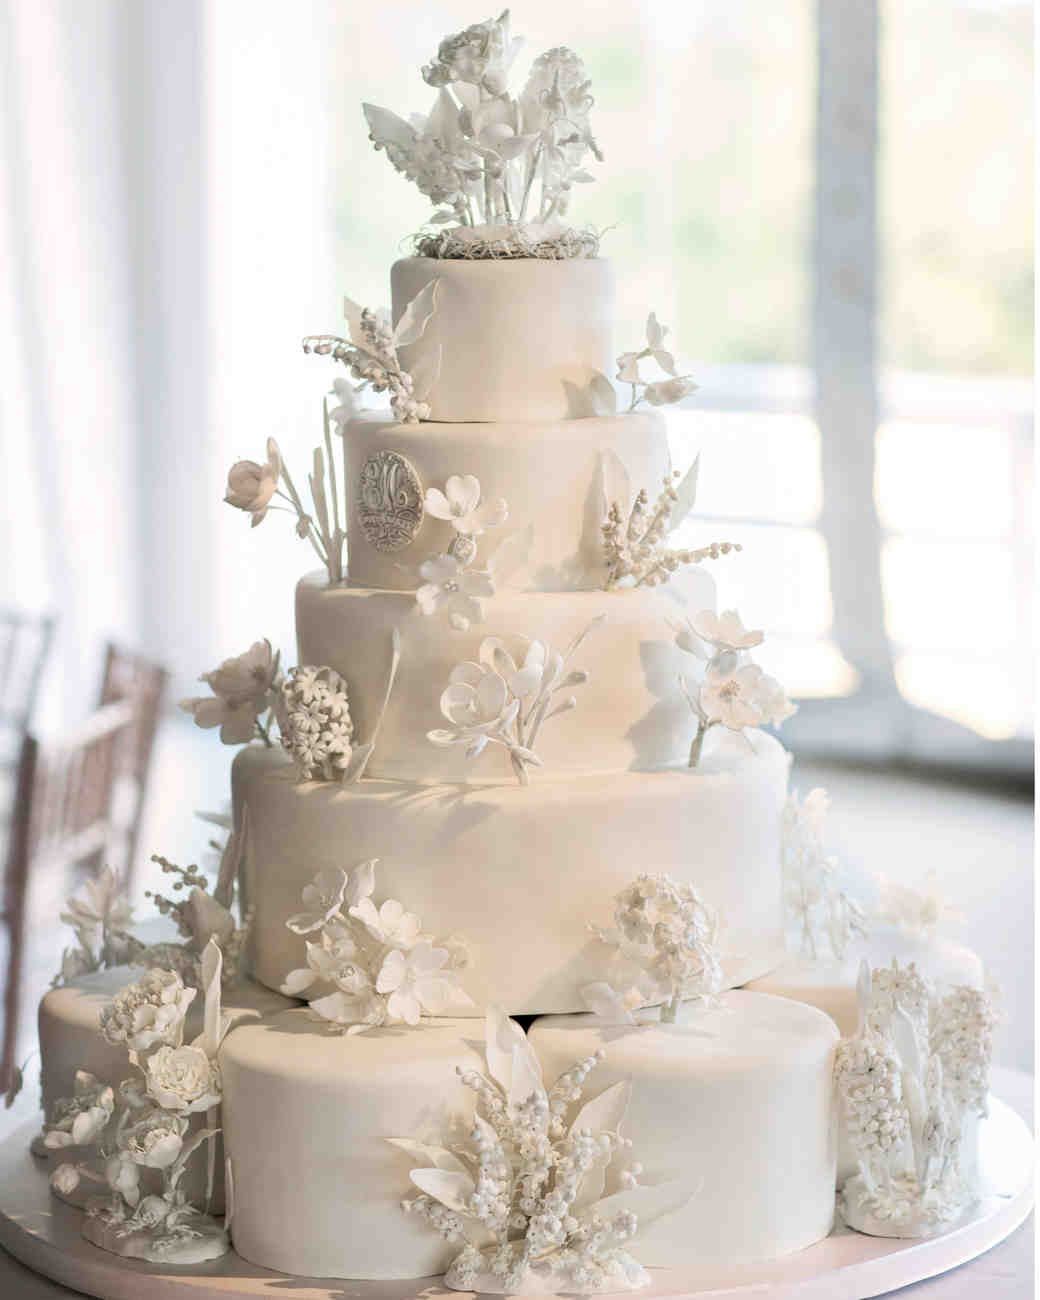 White Wedding Cake with White Edible Flowers